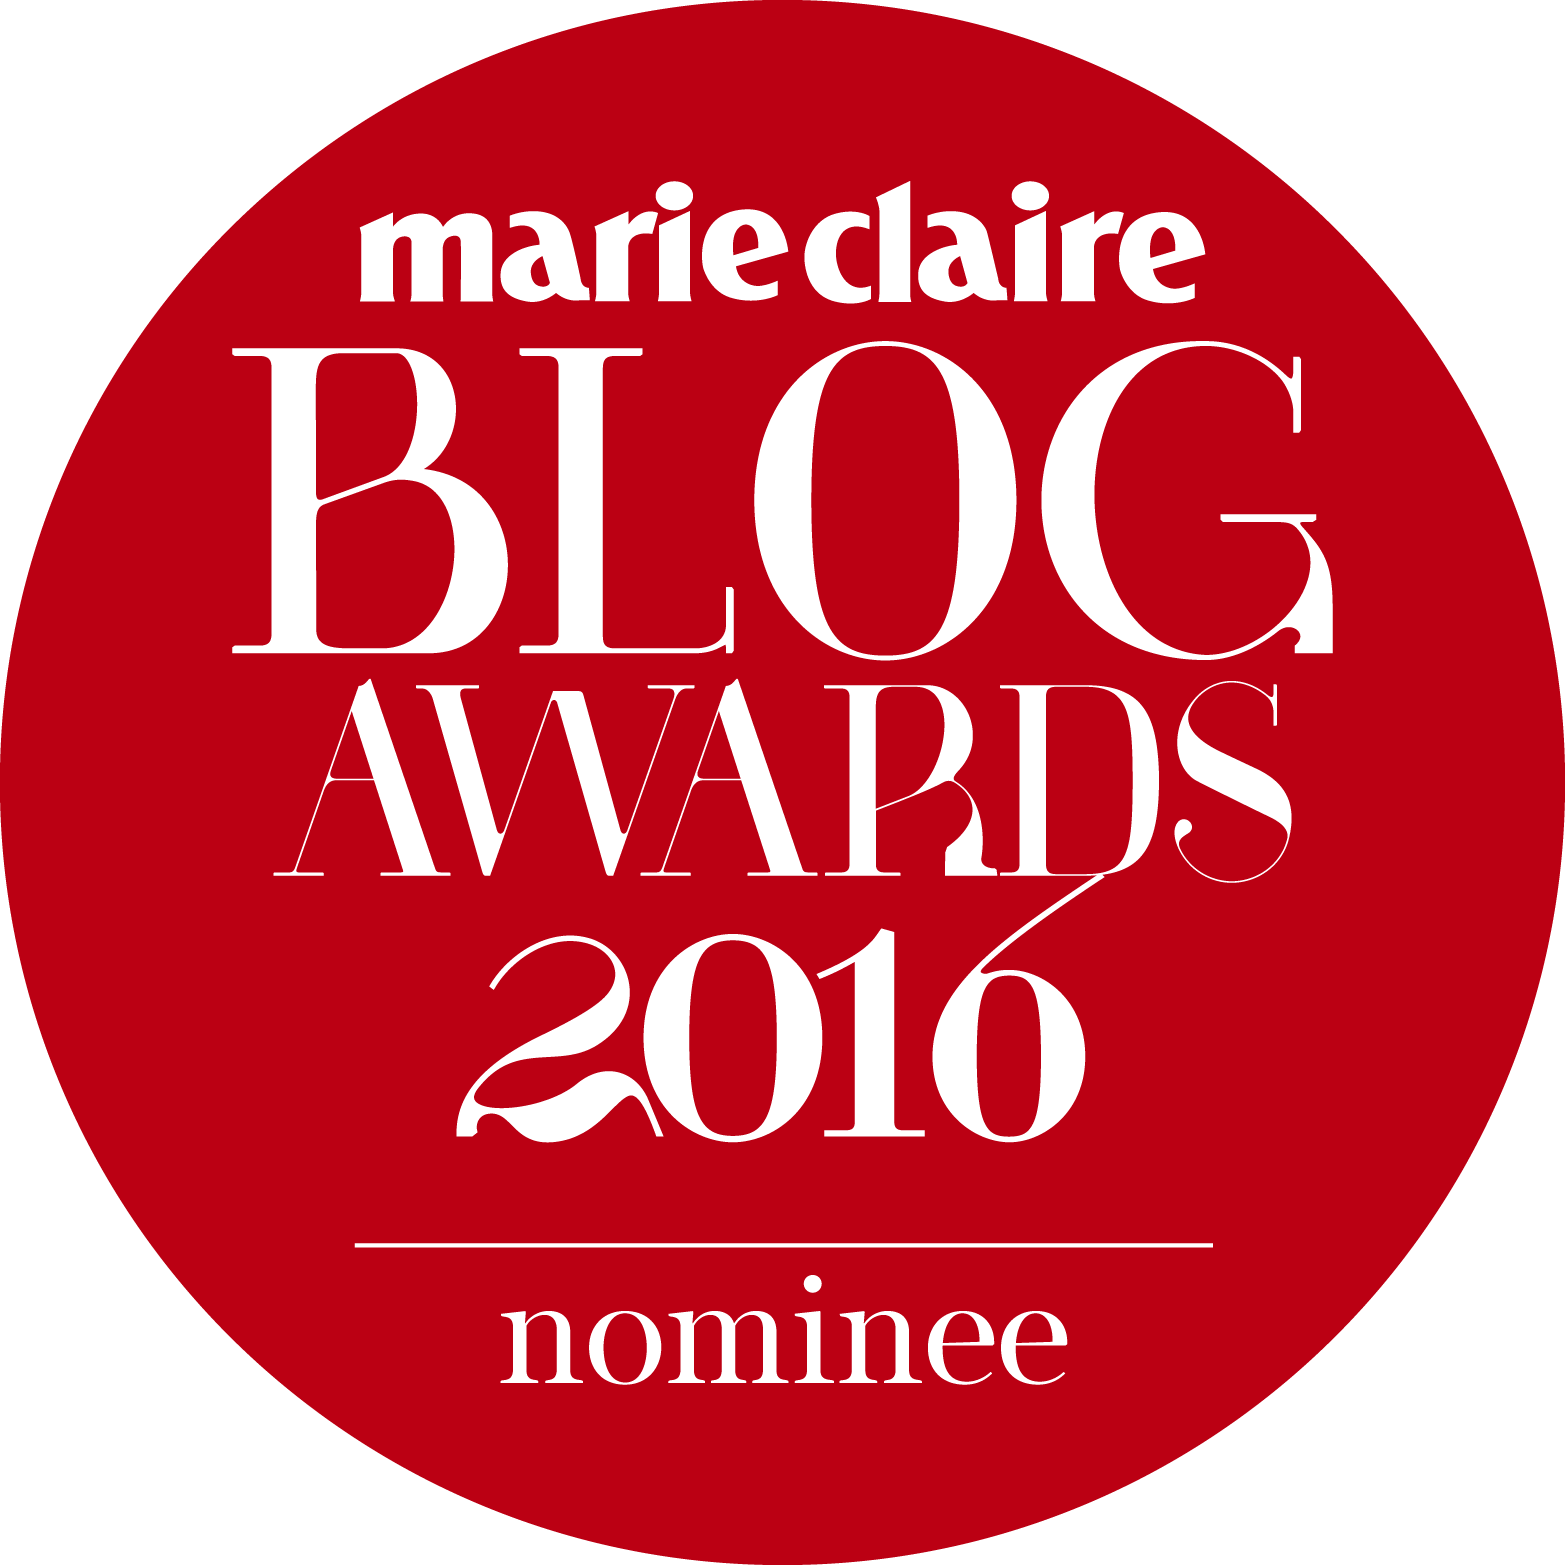 Marie Claire Blog Awards 2016